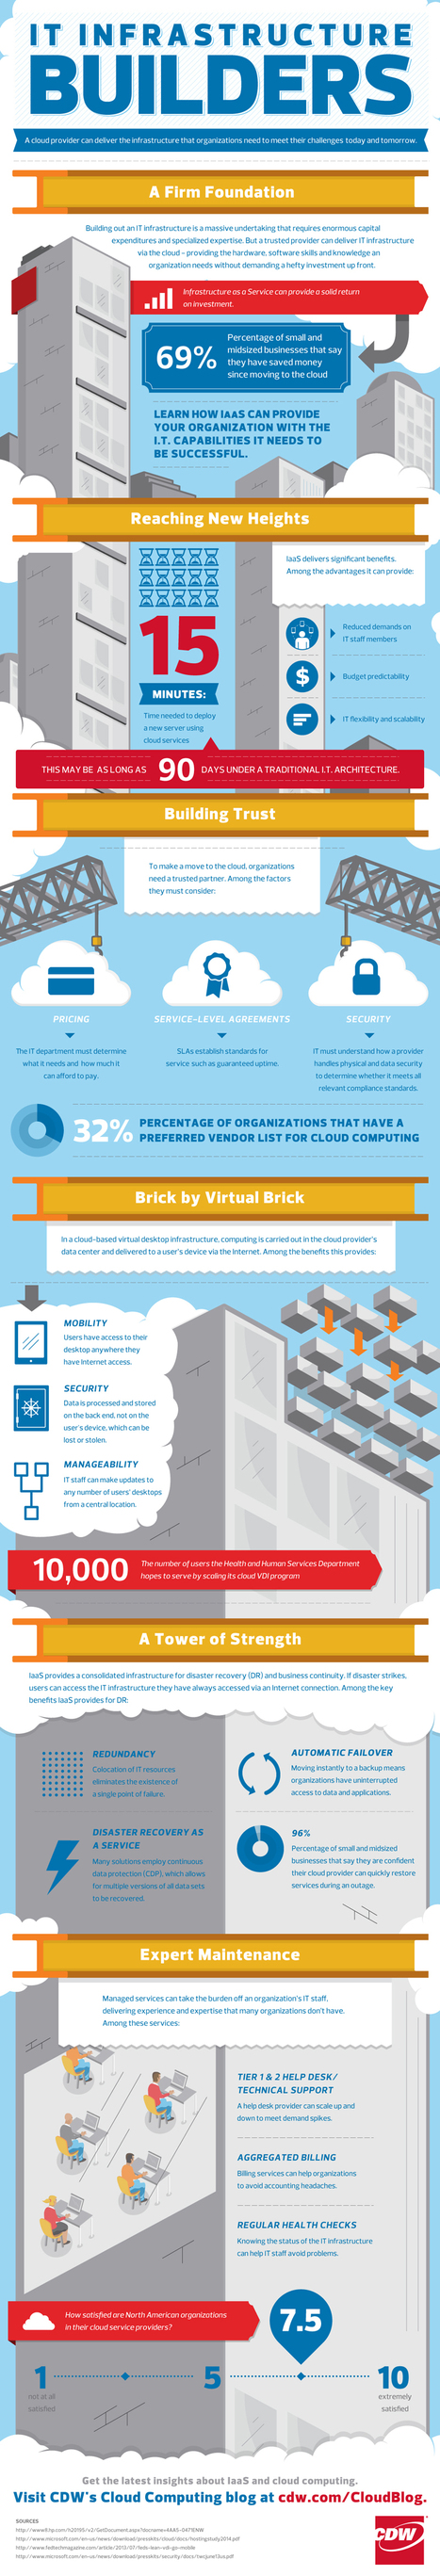 INFOGRAPHIC: Using the Cloud to Build for Success, Savings and Growth | Cloud Central | Scoop.it